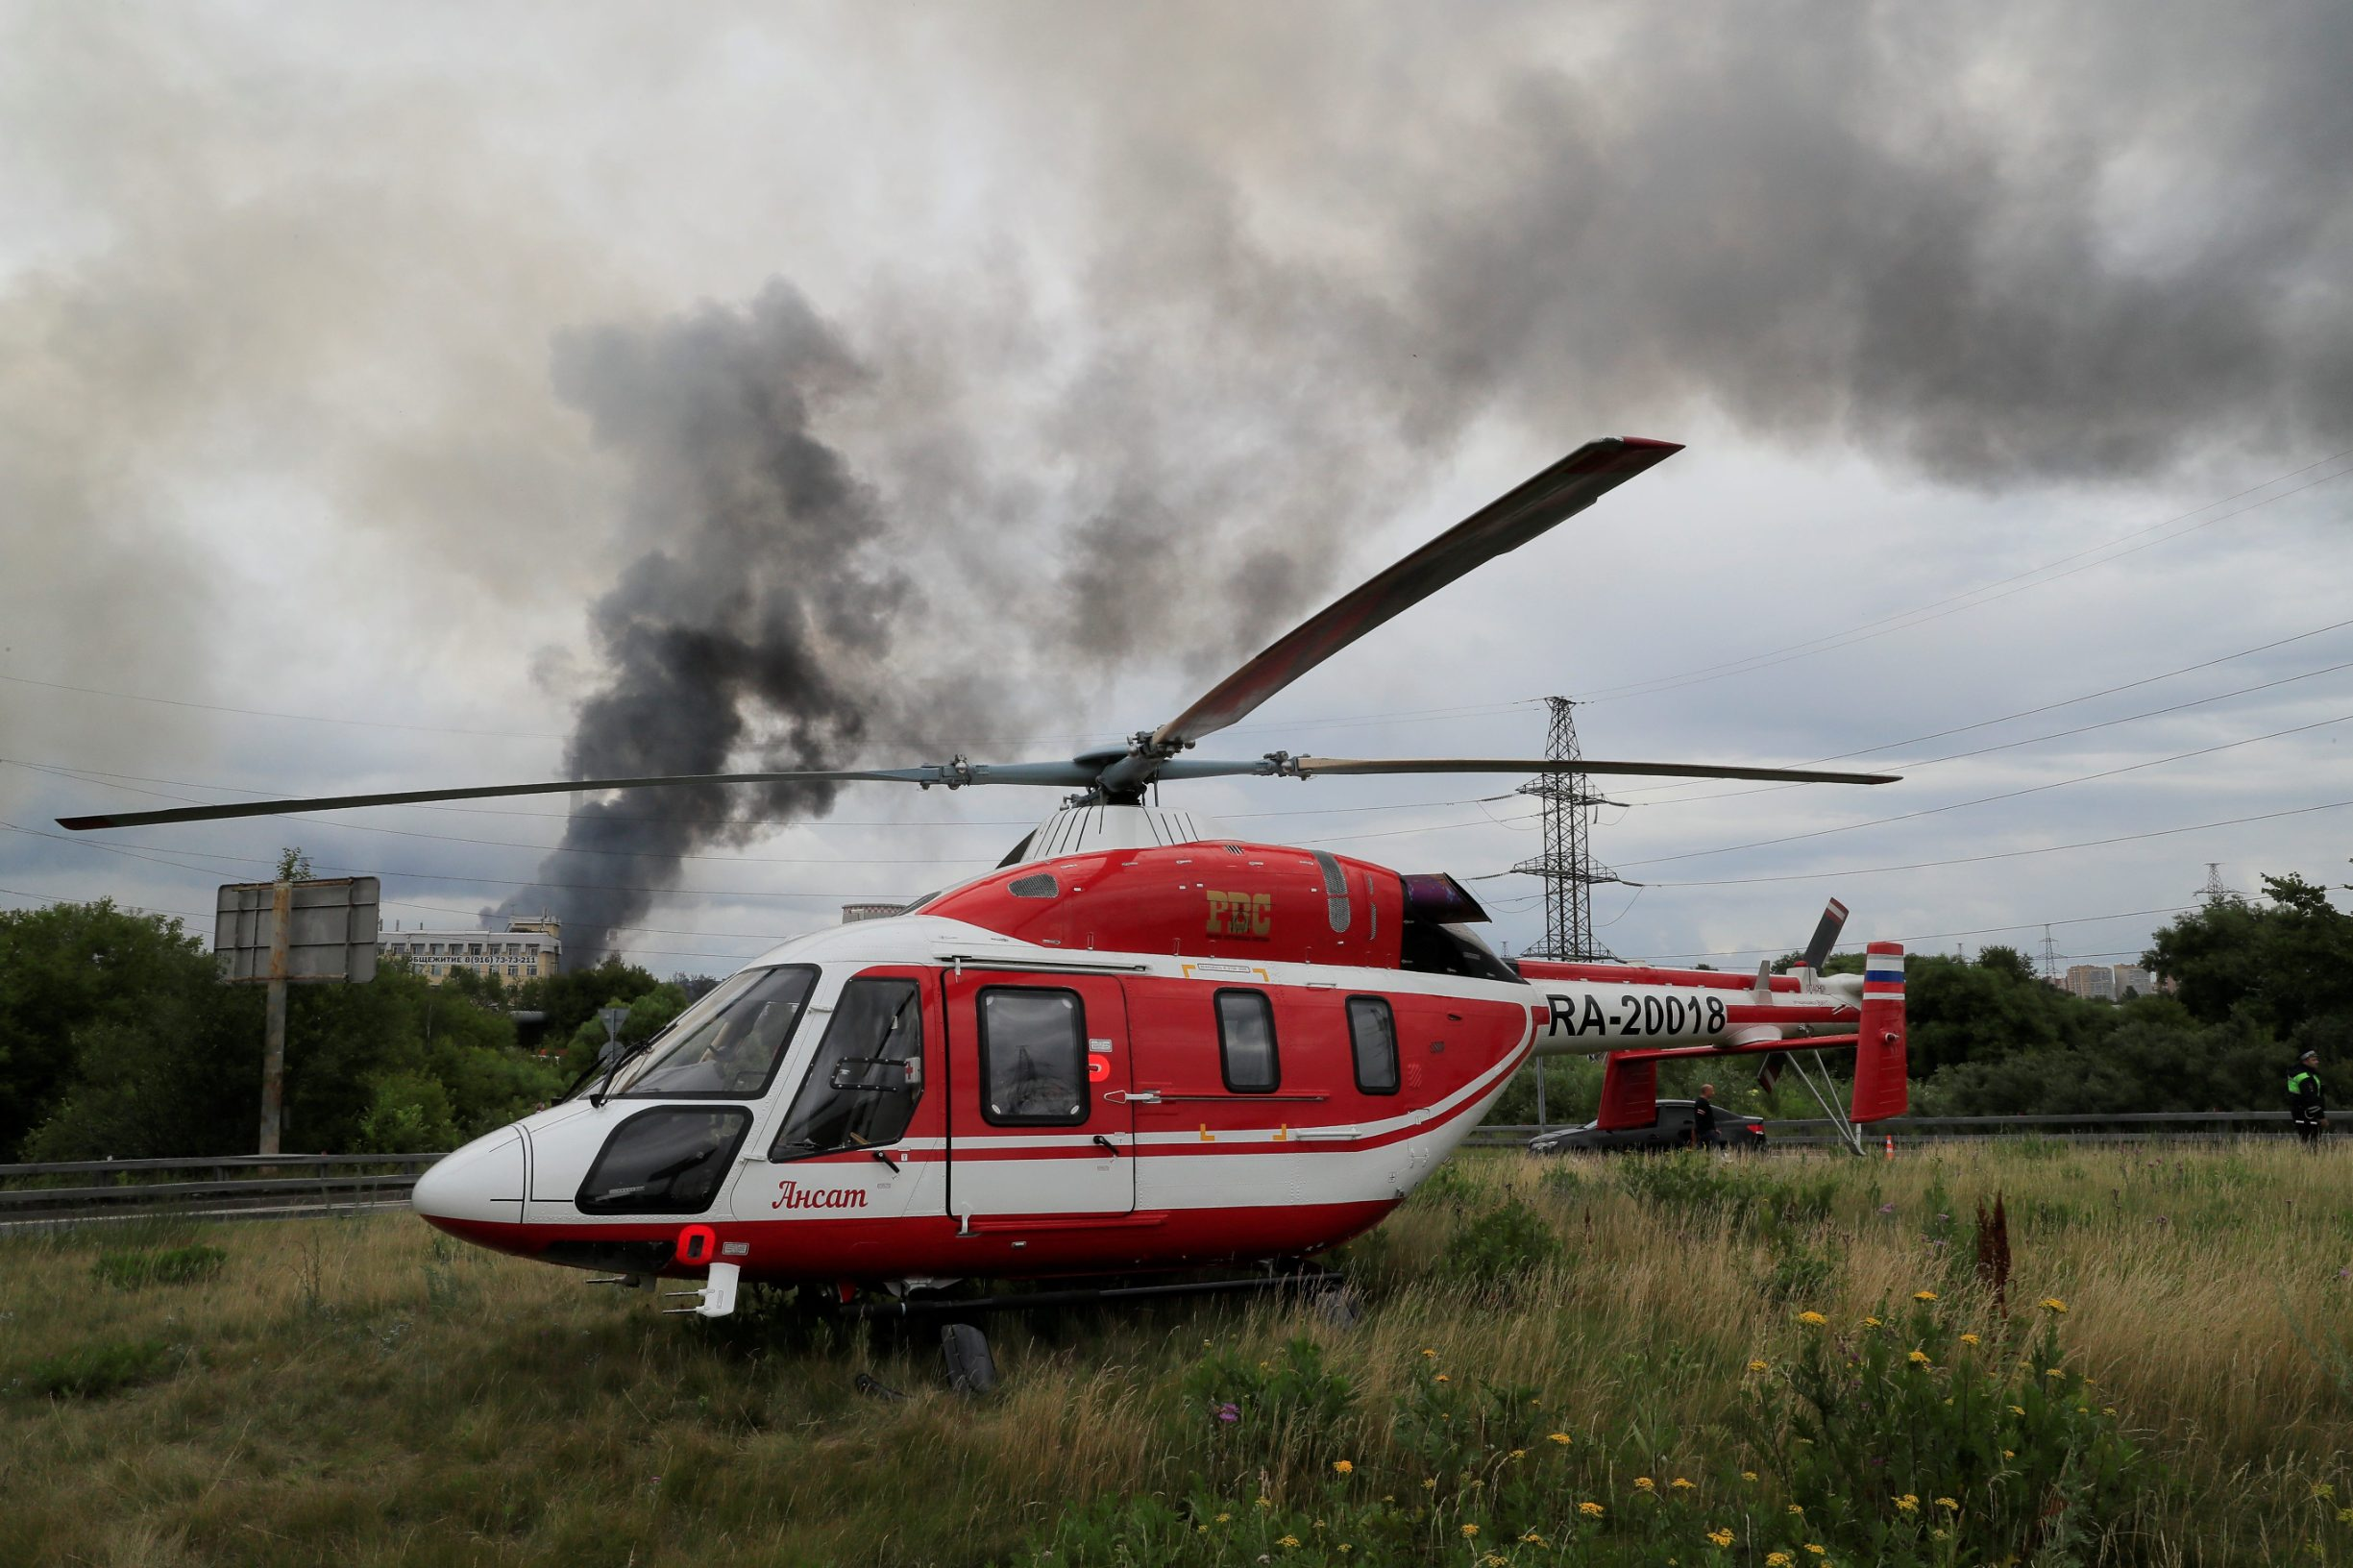 A helicopter of the Russian Emergencies Ministry is seen near the site of a fire at an electricity generating power station in Moscow region, Russia July 11, 2019. REUTERS/Tatyana Makeyeva